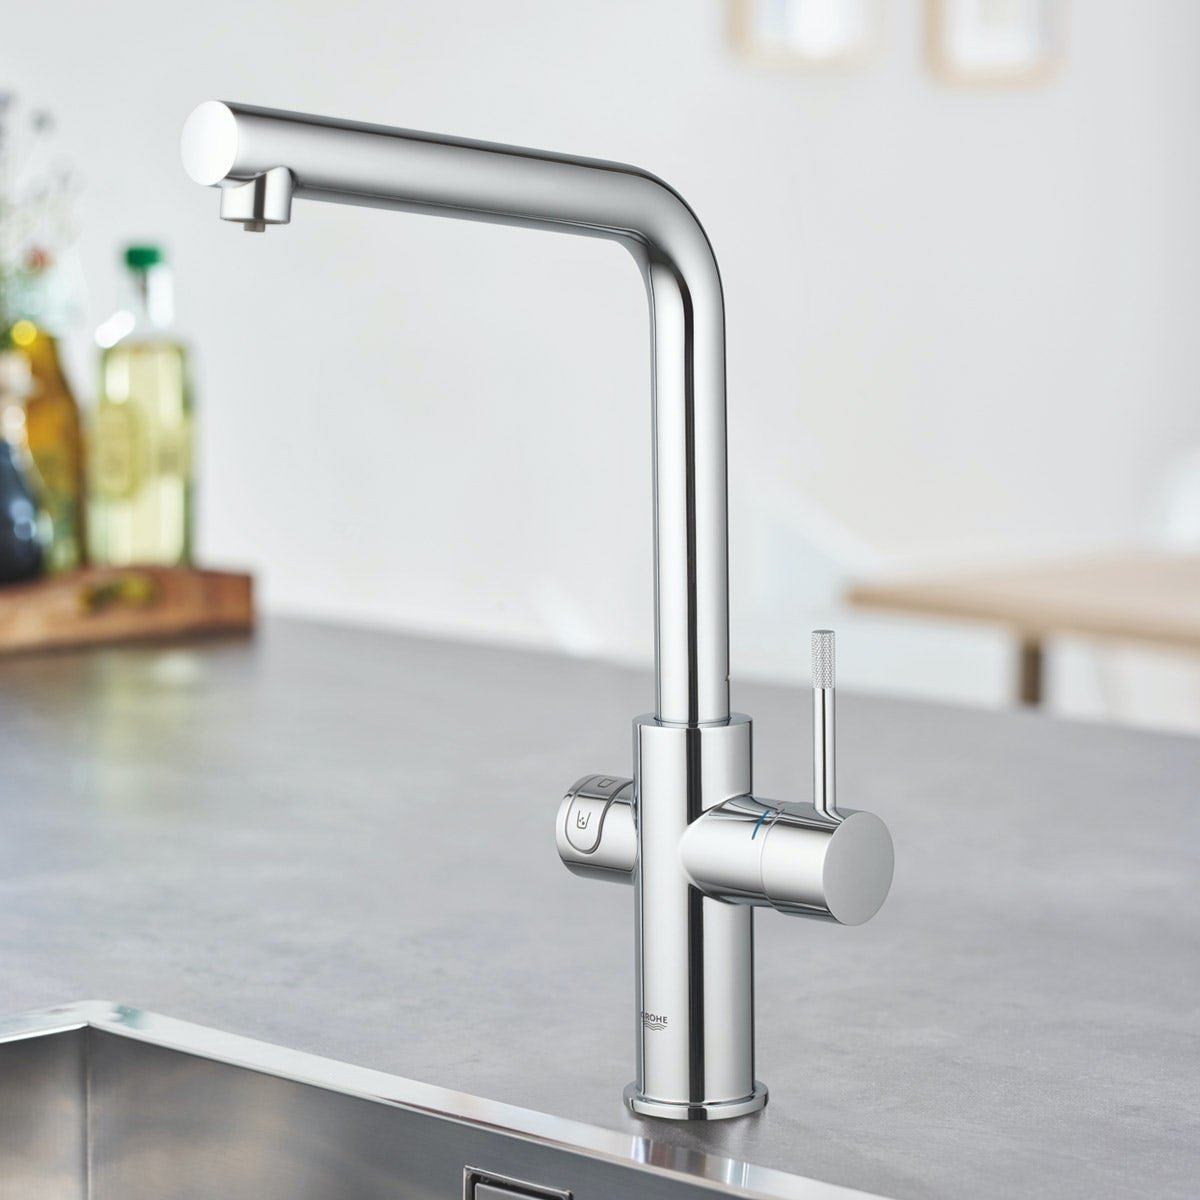 Grohe Blue Alternative grohe blue home l spout kitchen tap victoriaplum com